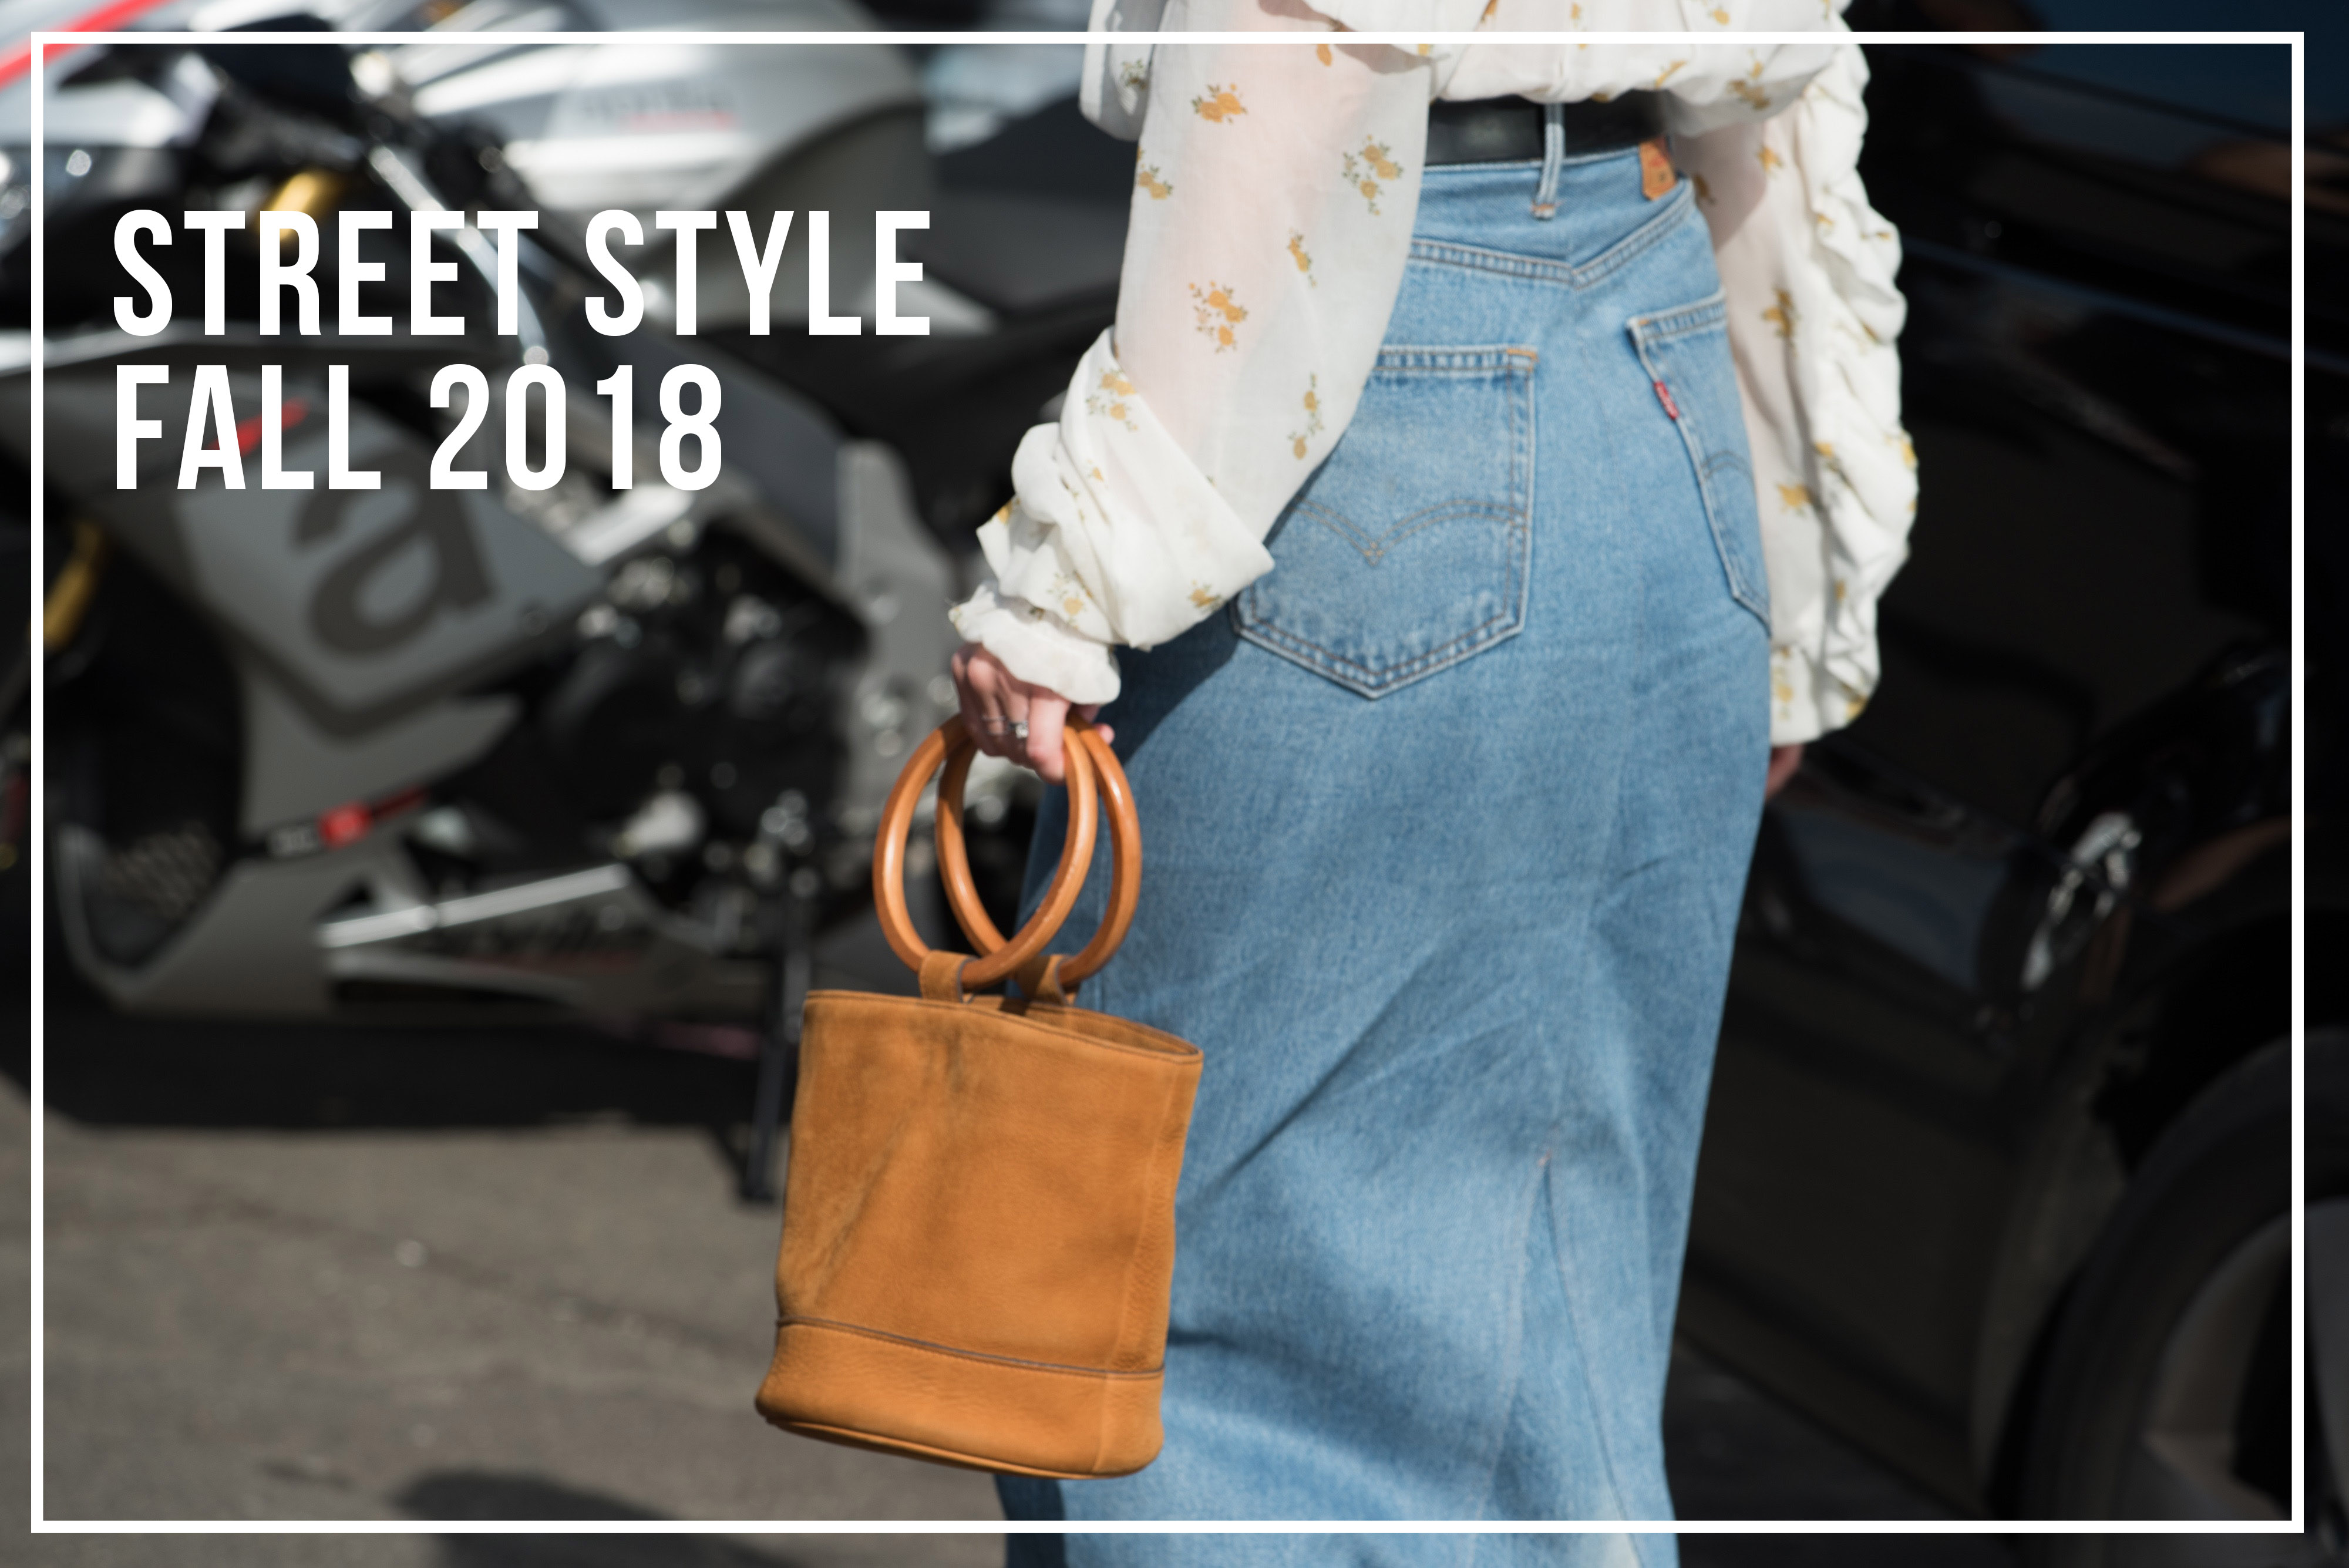 The Fashion Weeks – Street Style Fall 2018